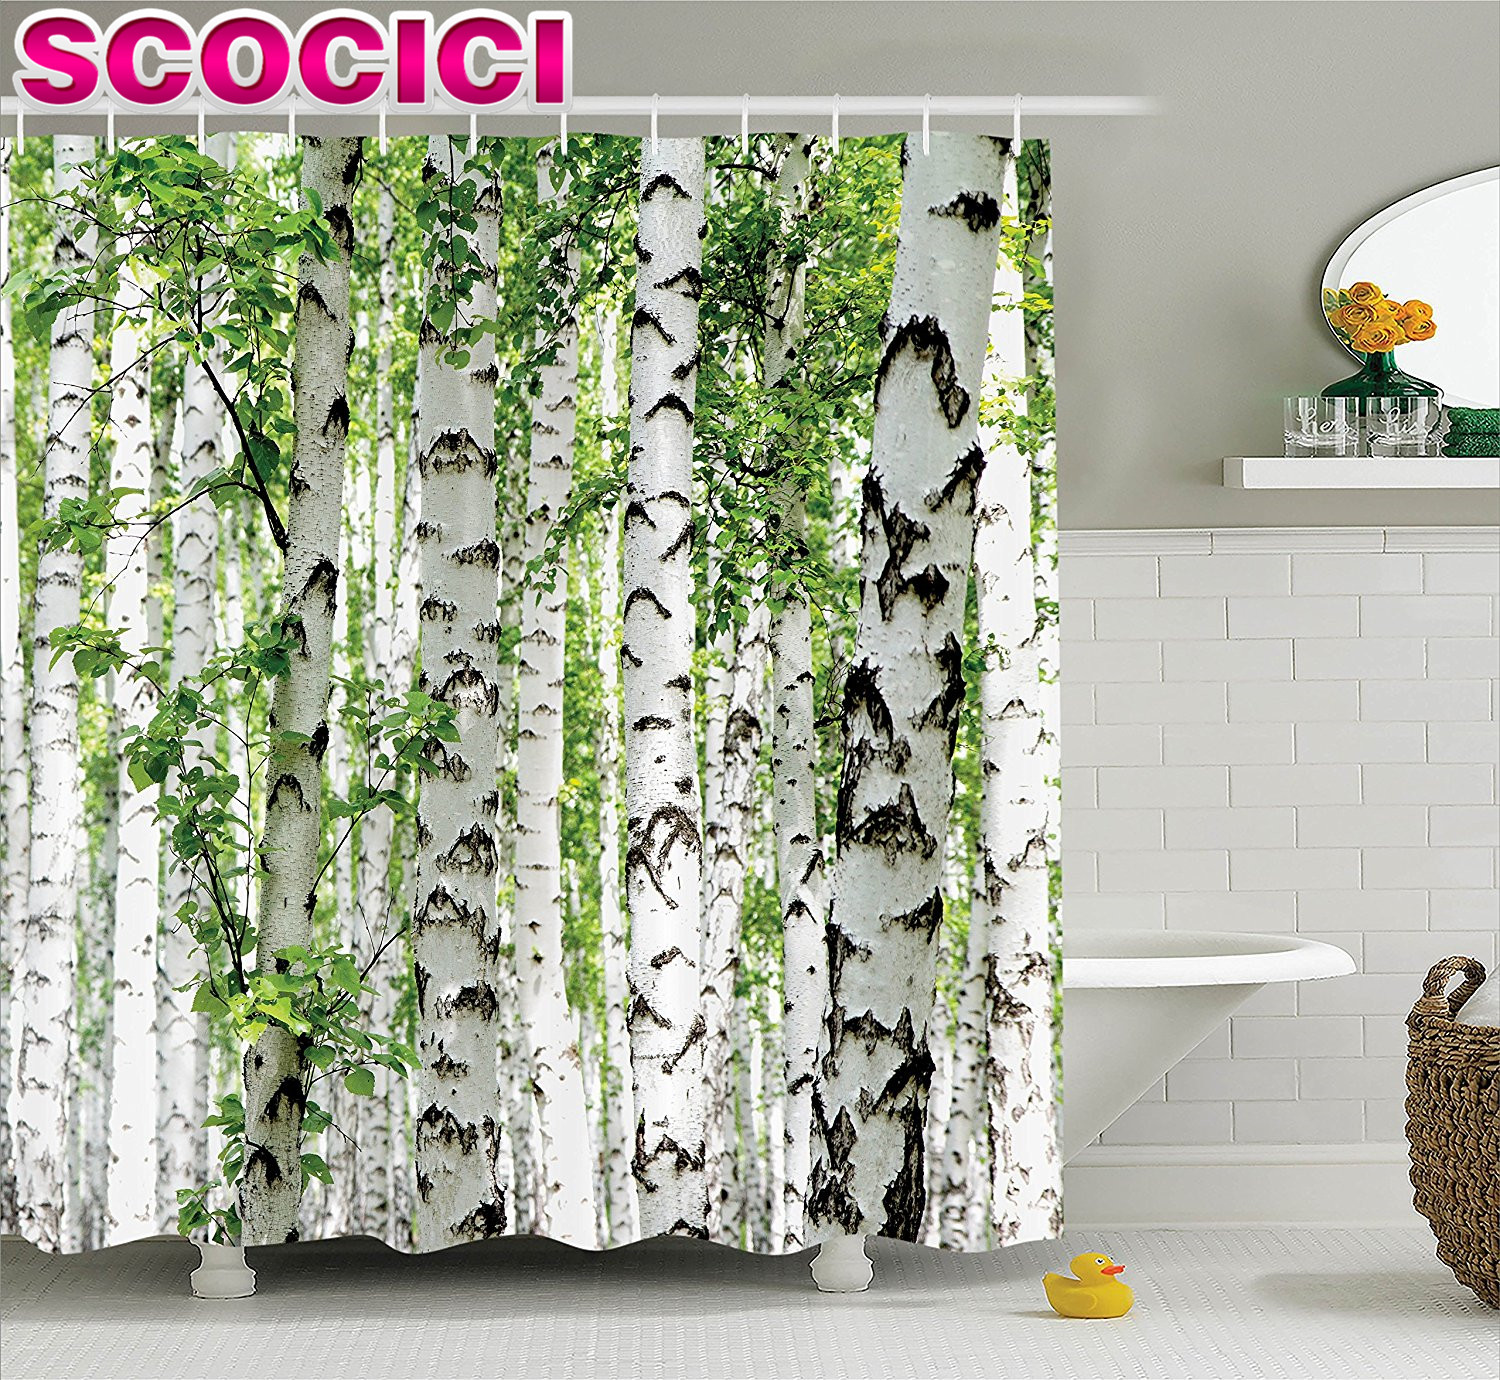 Birch tree shower curtains - Woodland Decor Shower Curtain Set Birch Trees In The Forest Summertime Wildlife Nature Themed Decorating Picture Bathroom Access